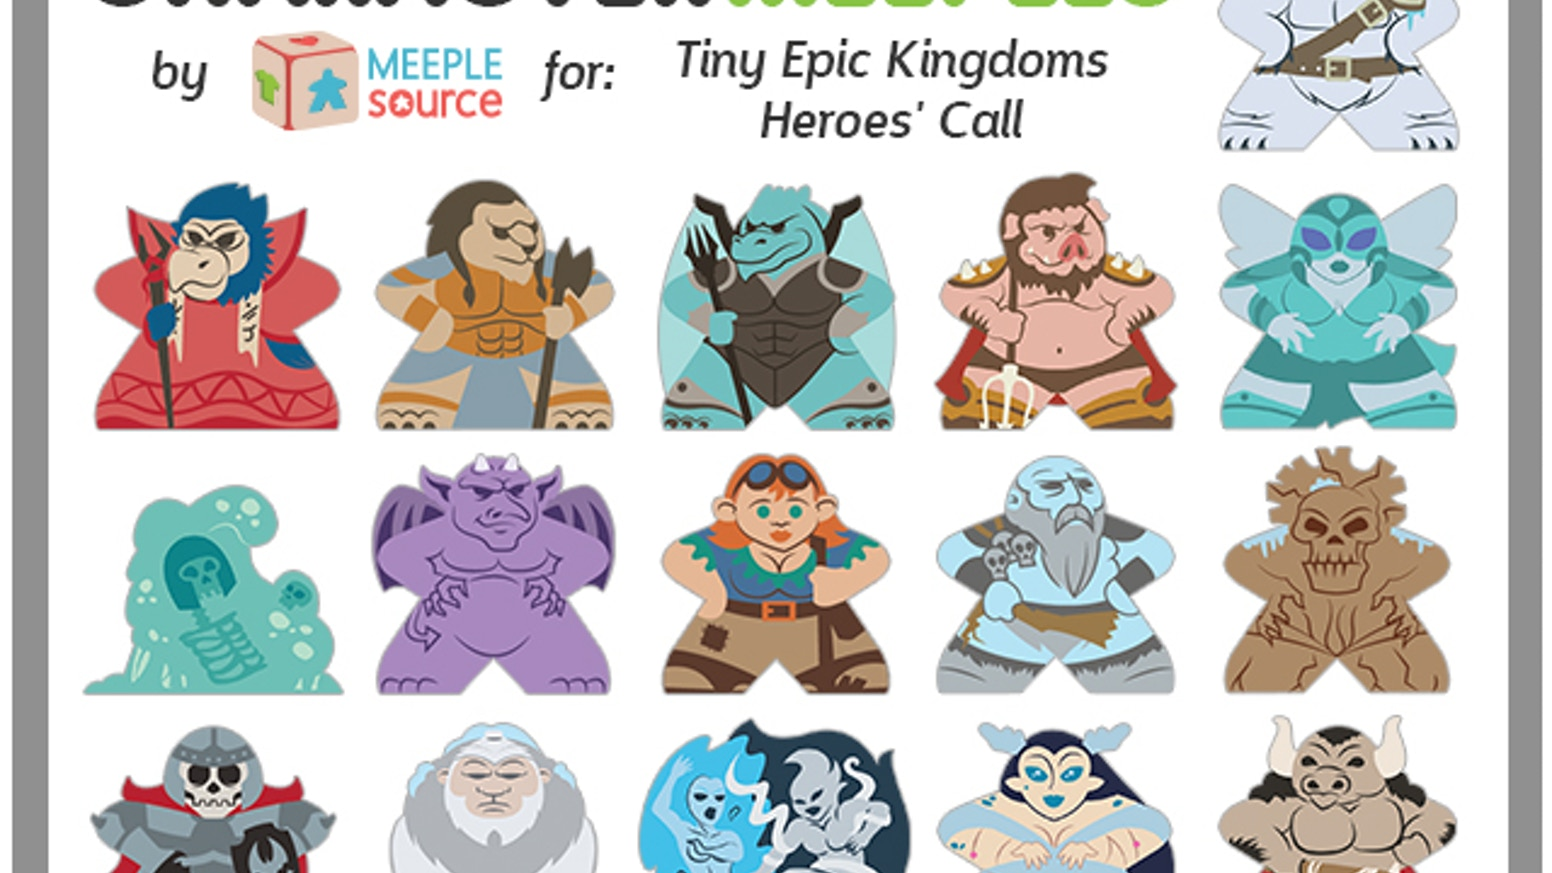 Complete your set of Tiny Epic Kingdoms Character Meeples with these 16 new factions!